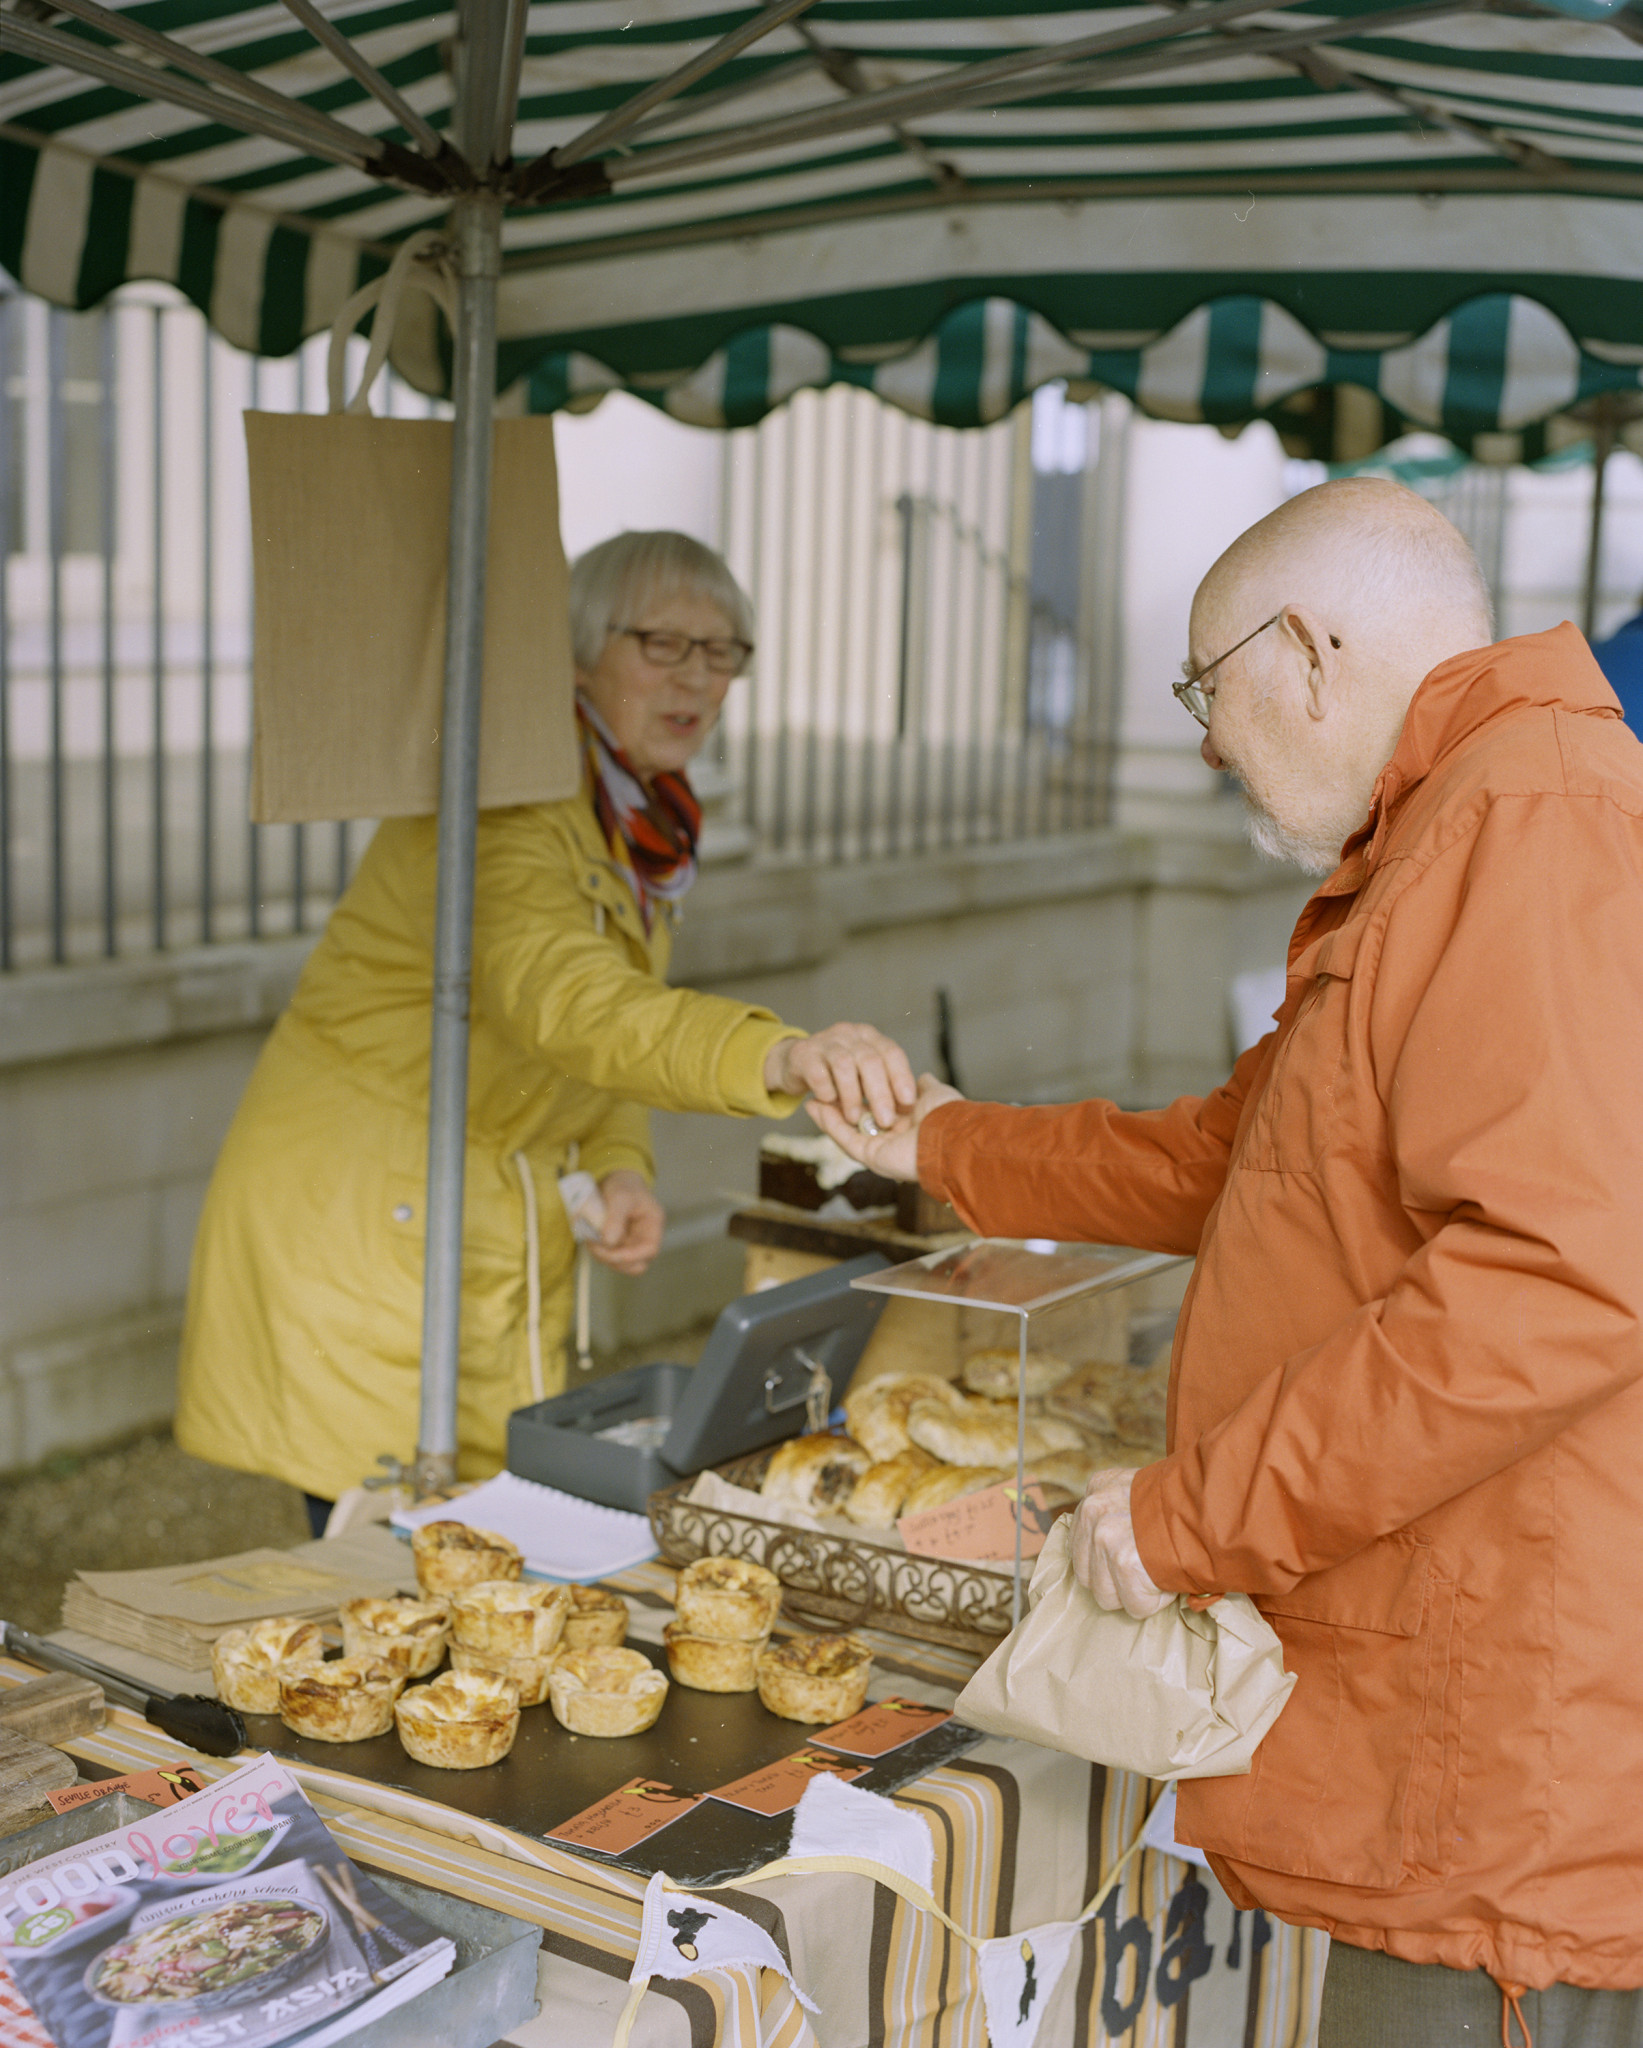 Image of man buying pastry from a woman in a market stall